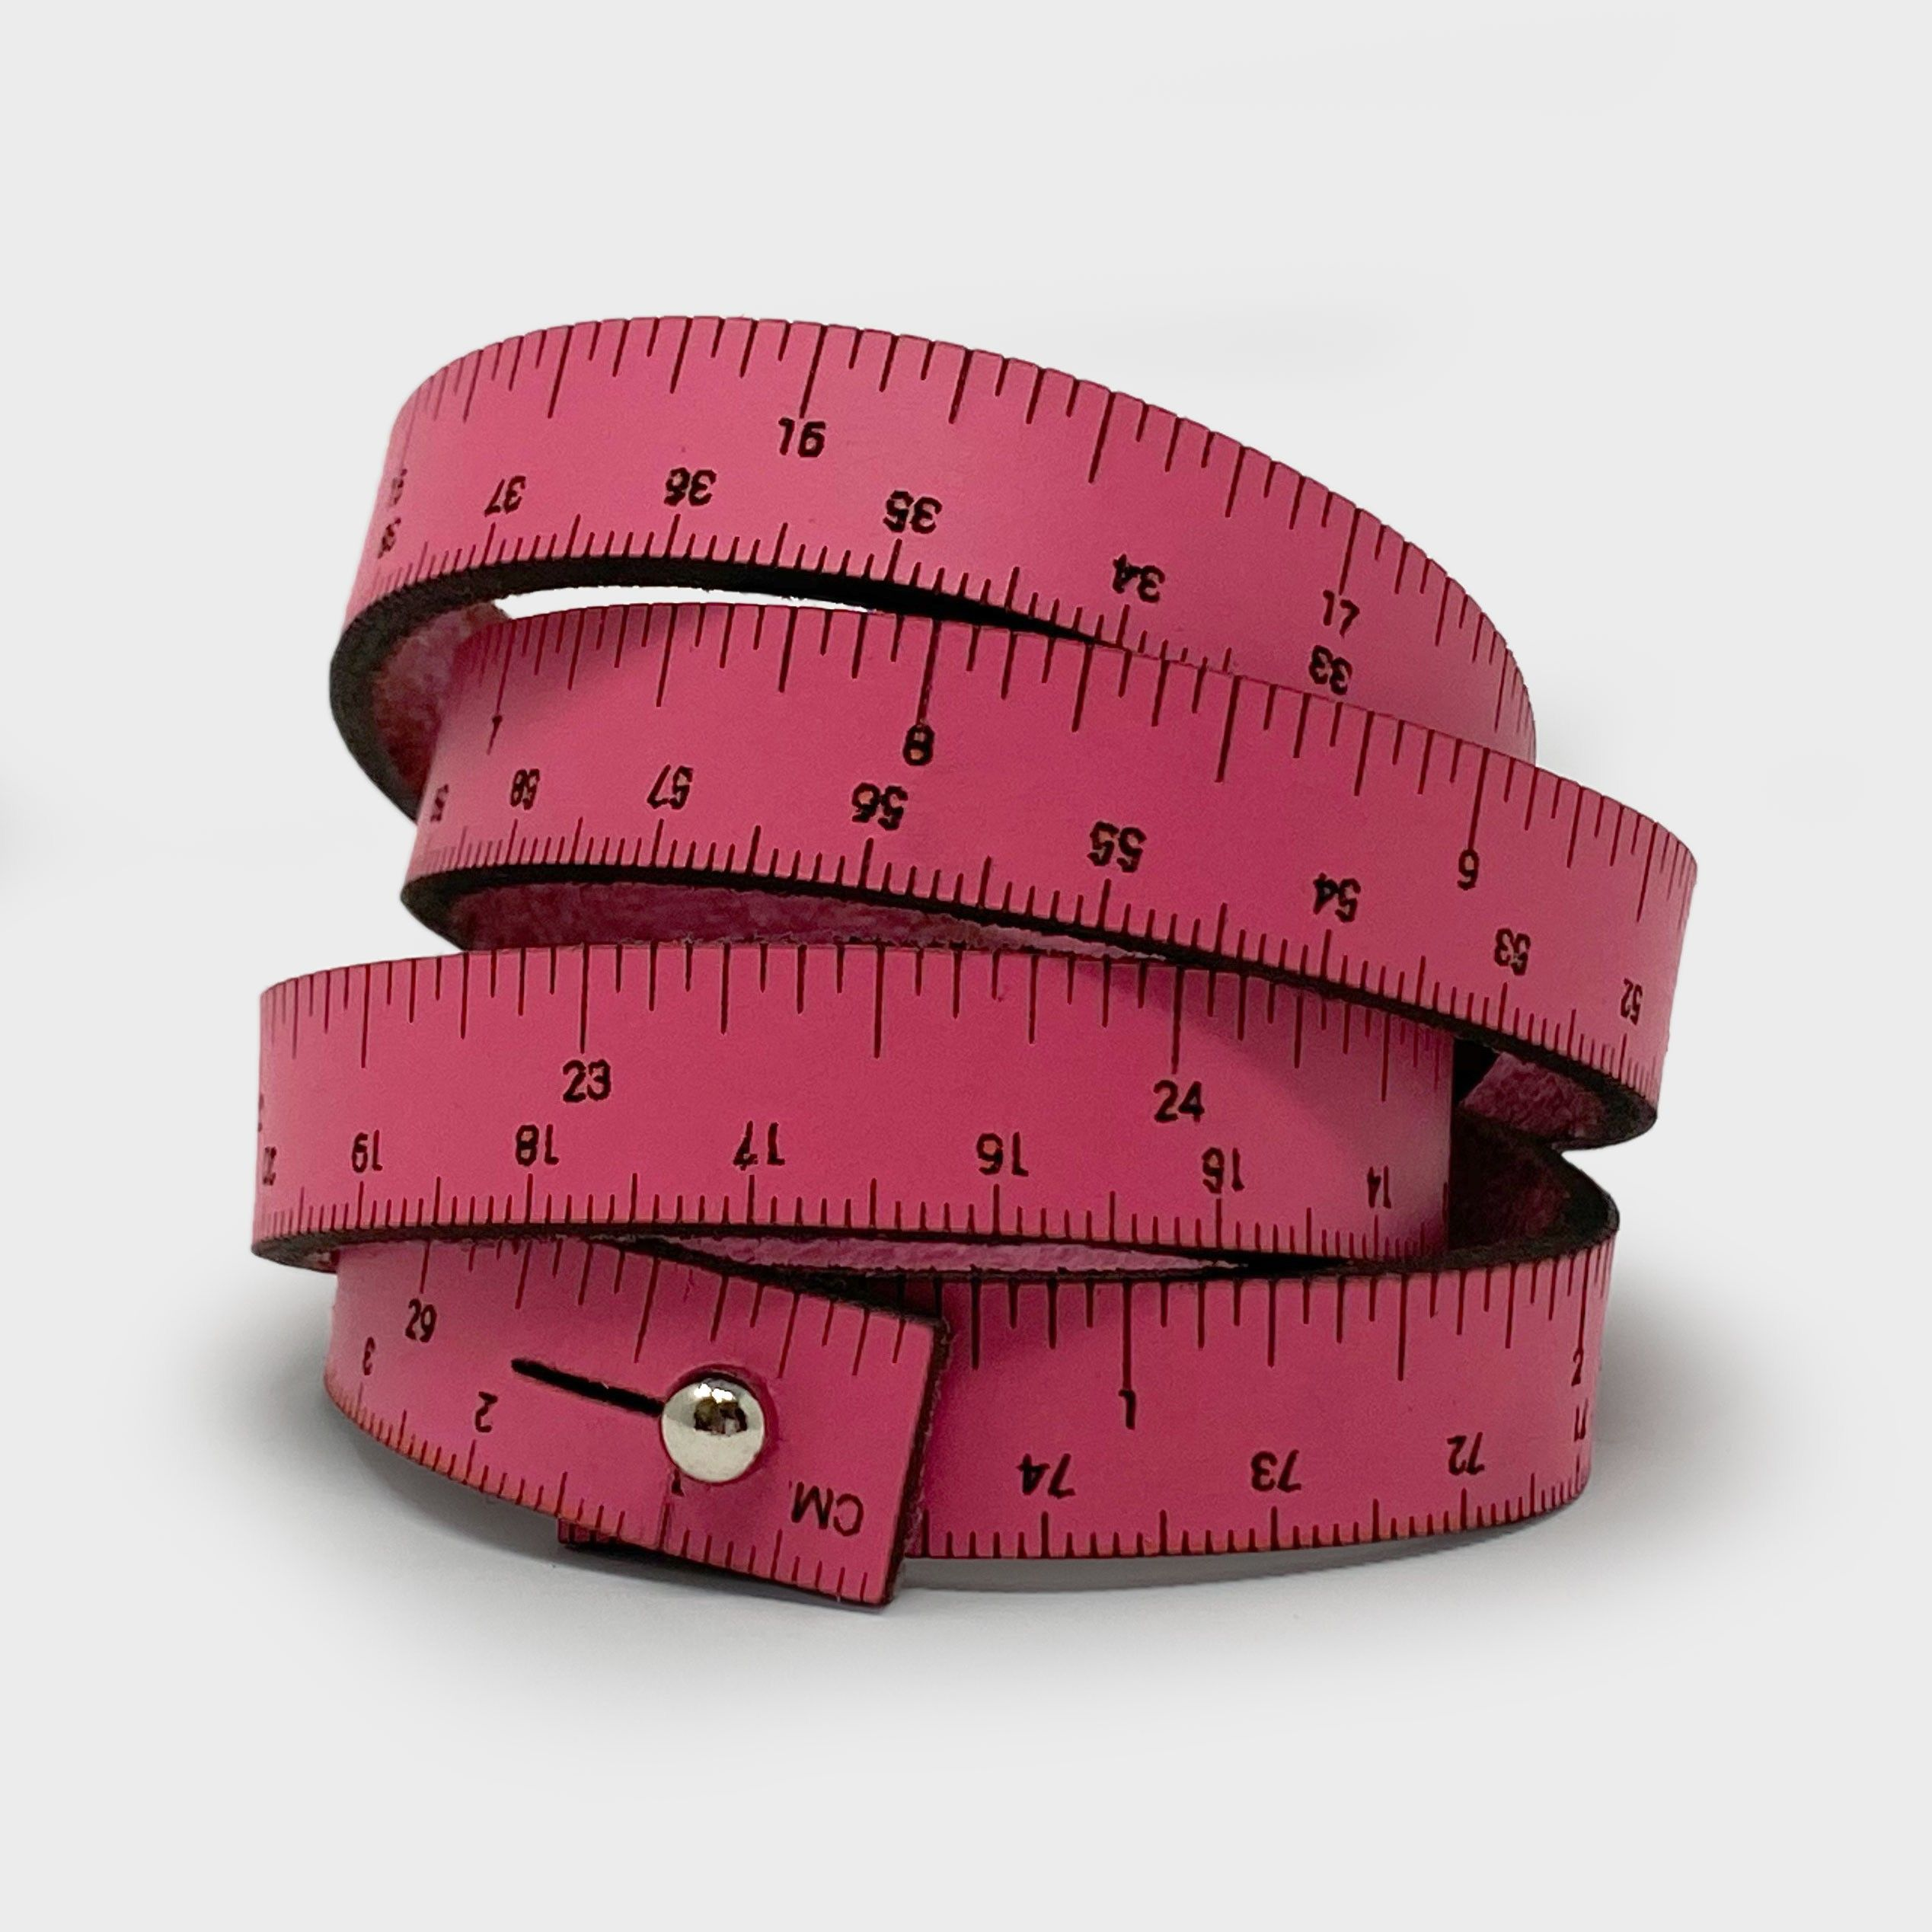 how to measure wrist size with ruler